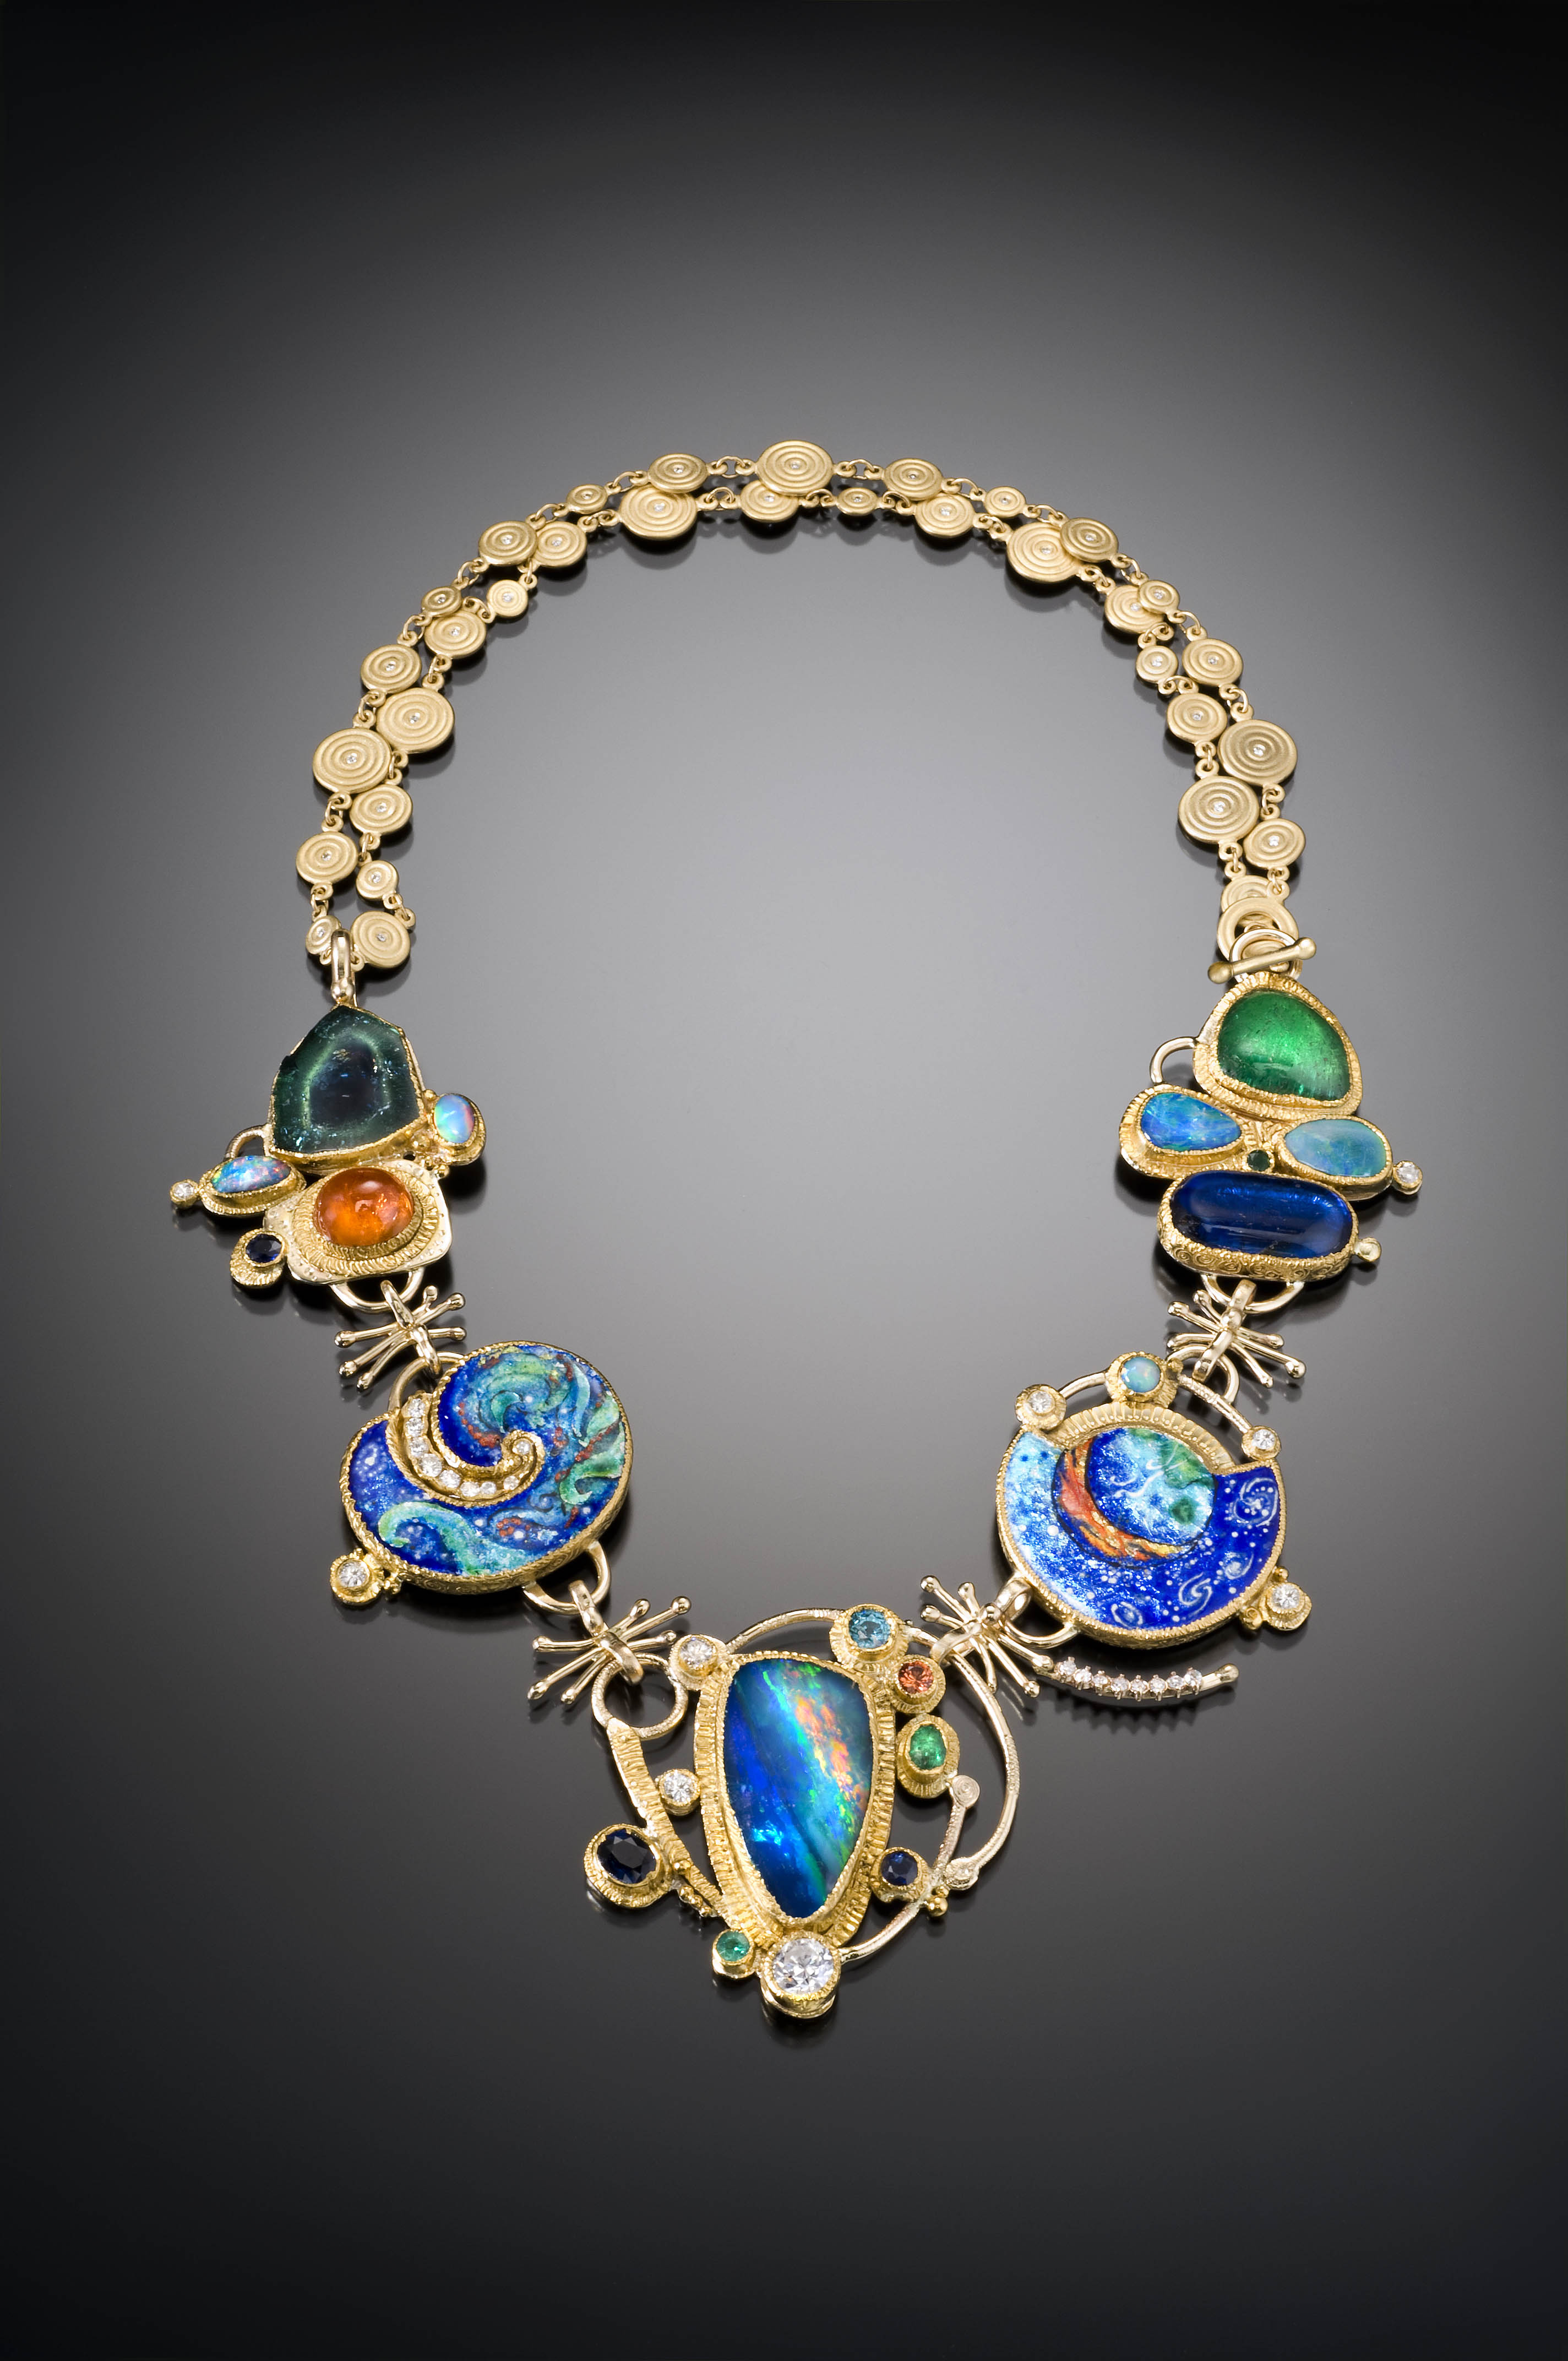 Out Of This World Jewelry In The Space Age Exhibition